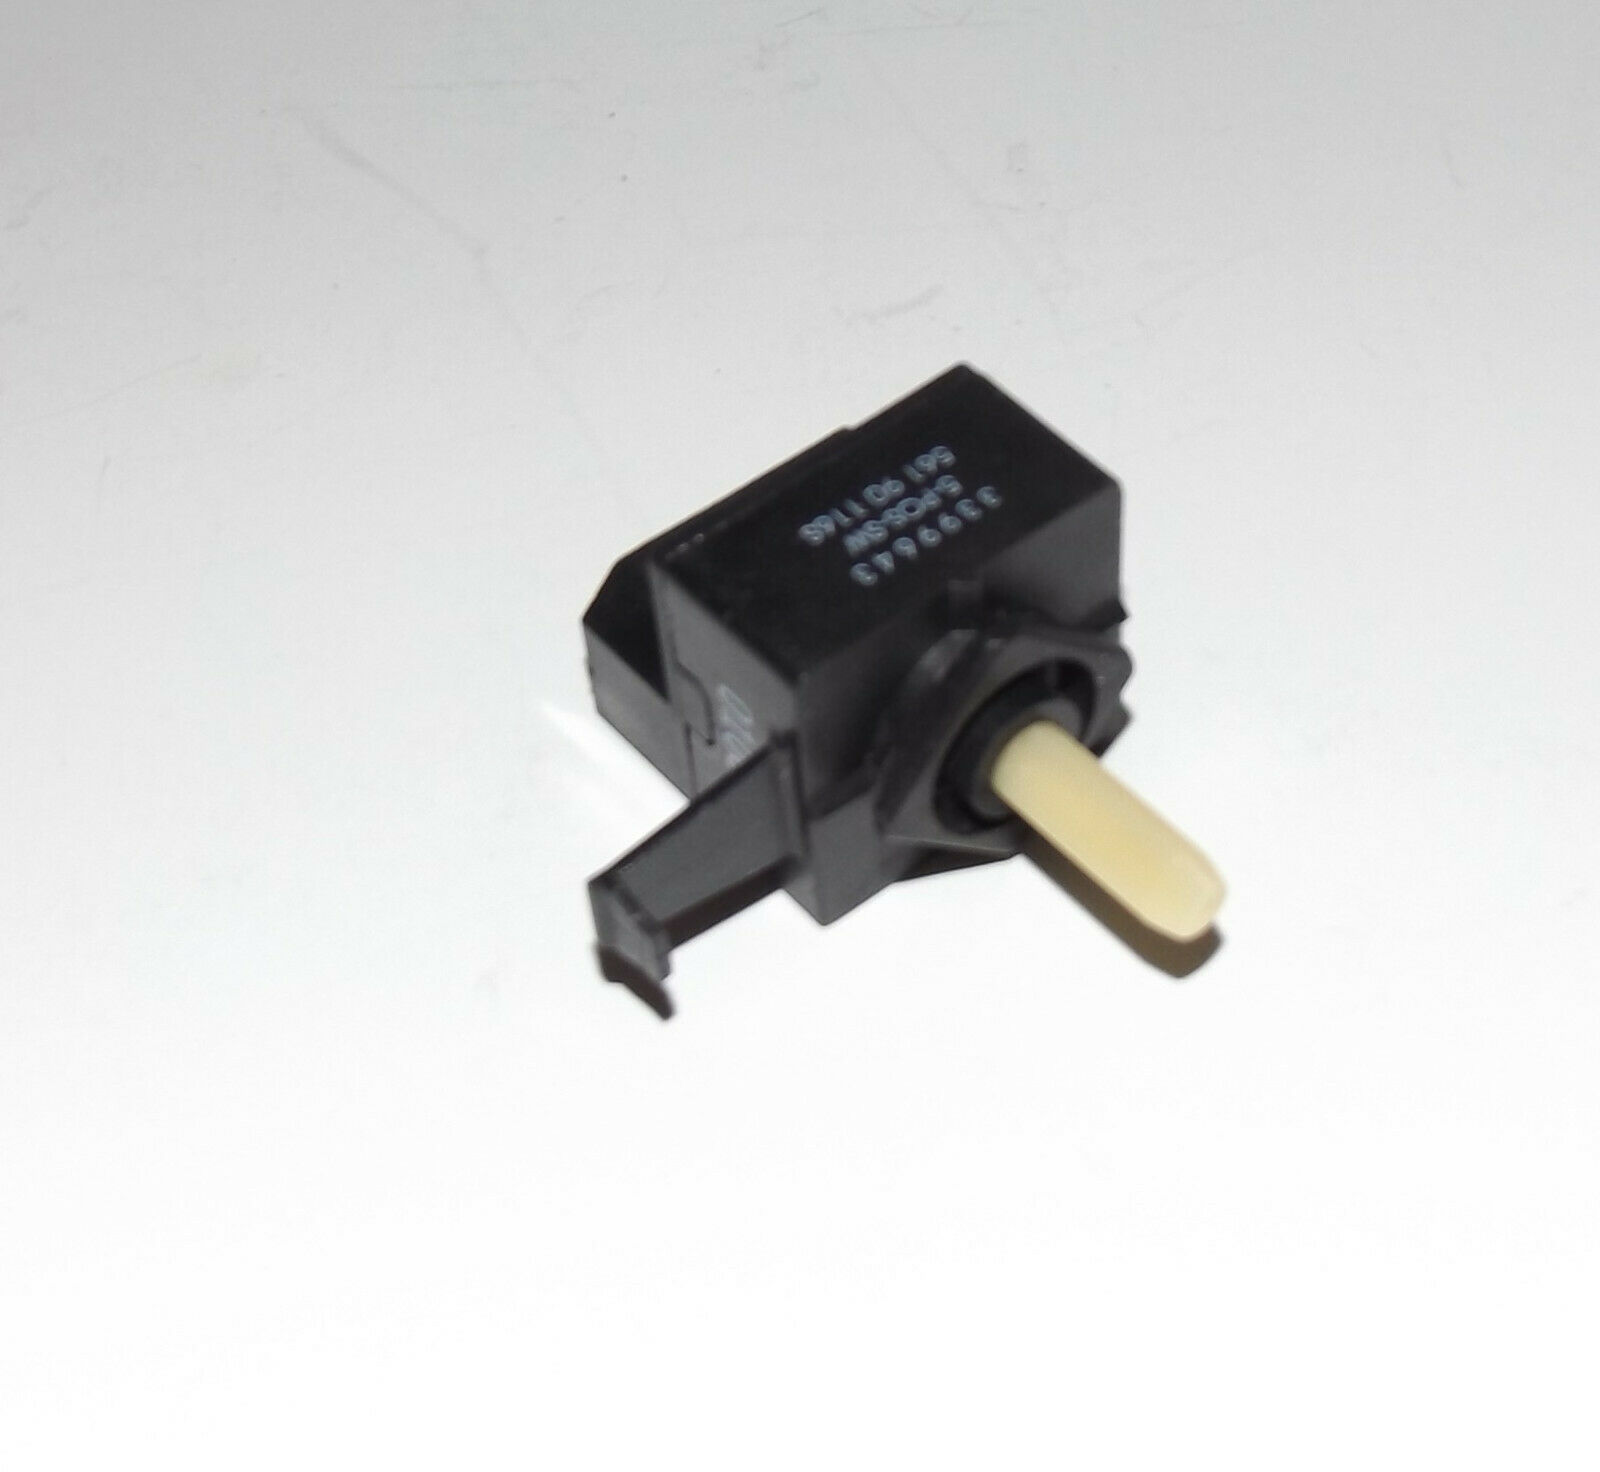 Primary image for Kenmore Dryer : 5 Position Temperature Switch (3399643 / WP3399643) {P3916}